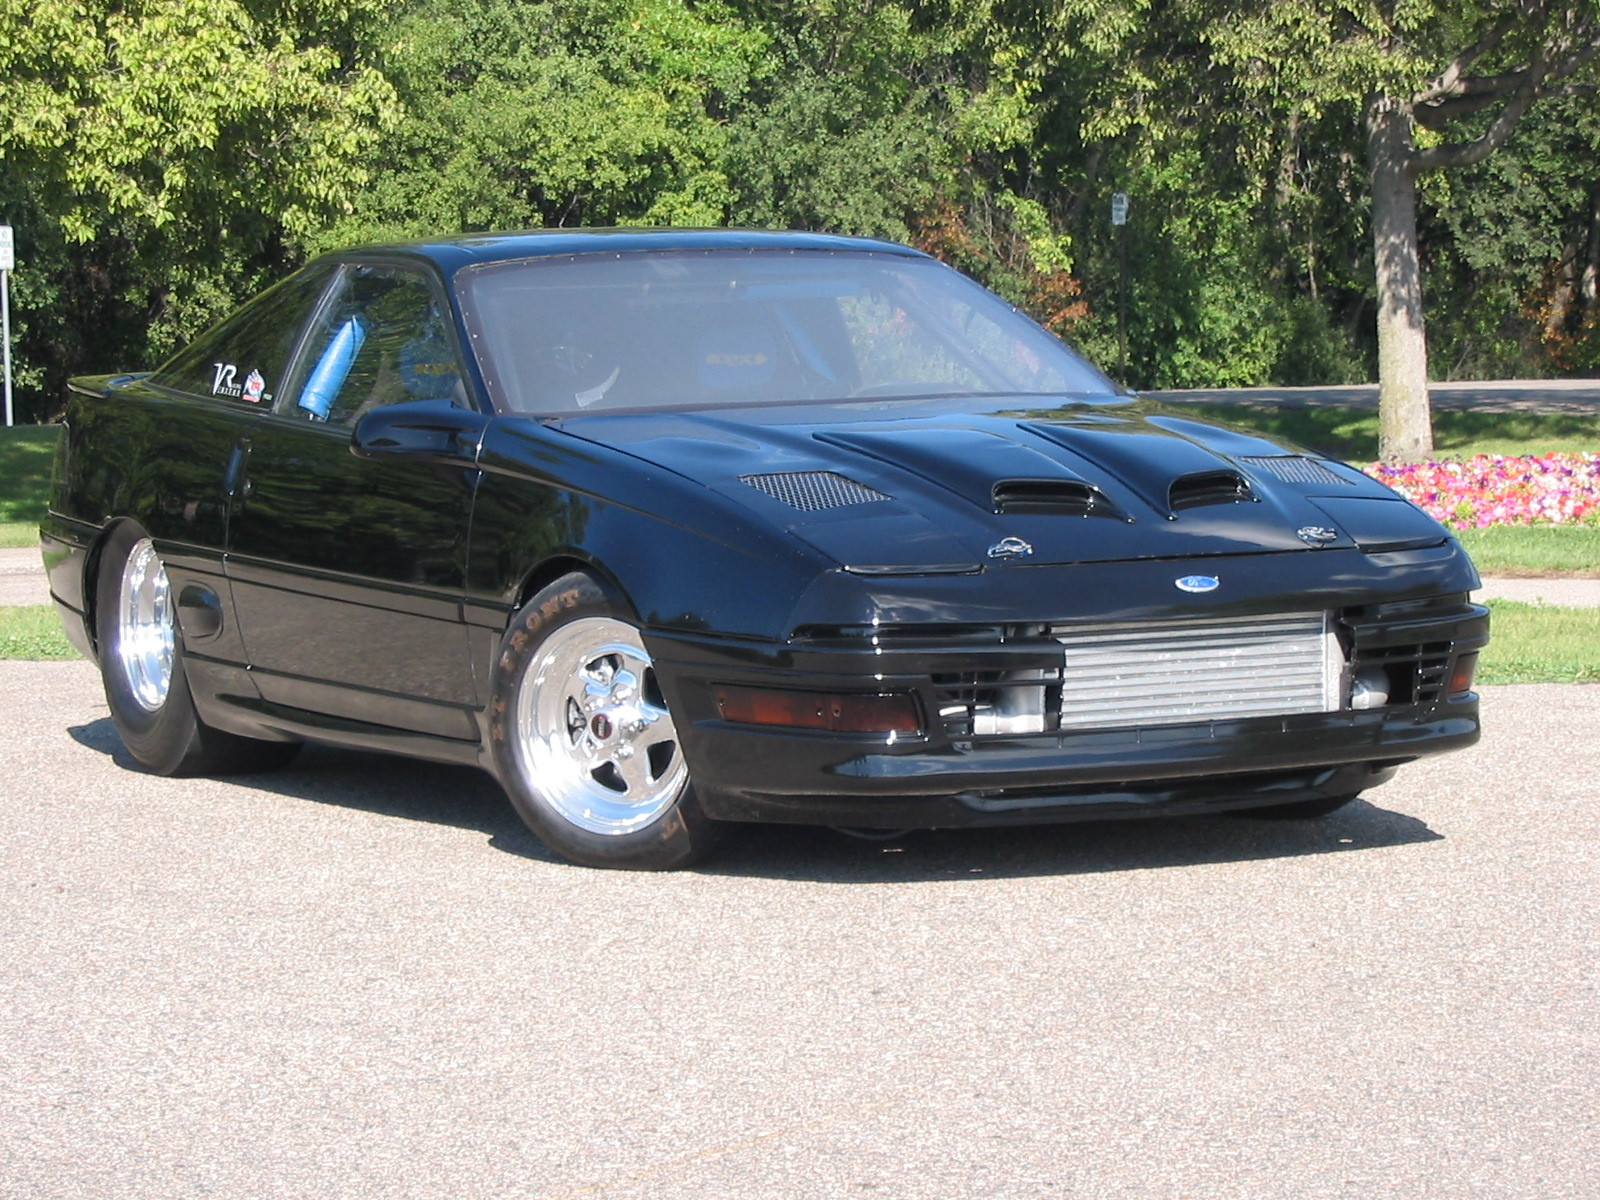 Ford Probe photo 17